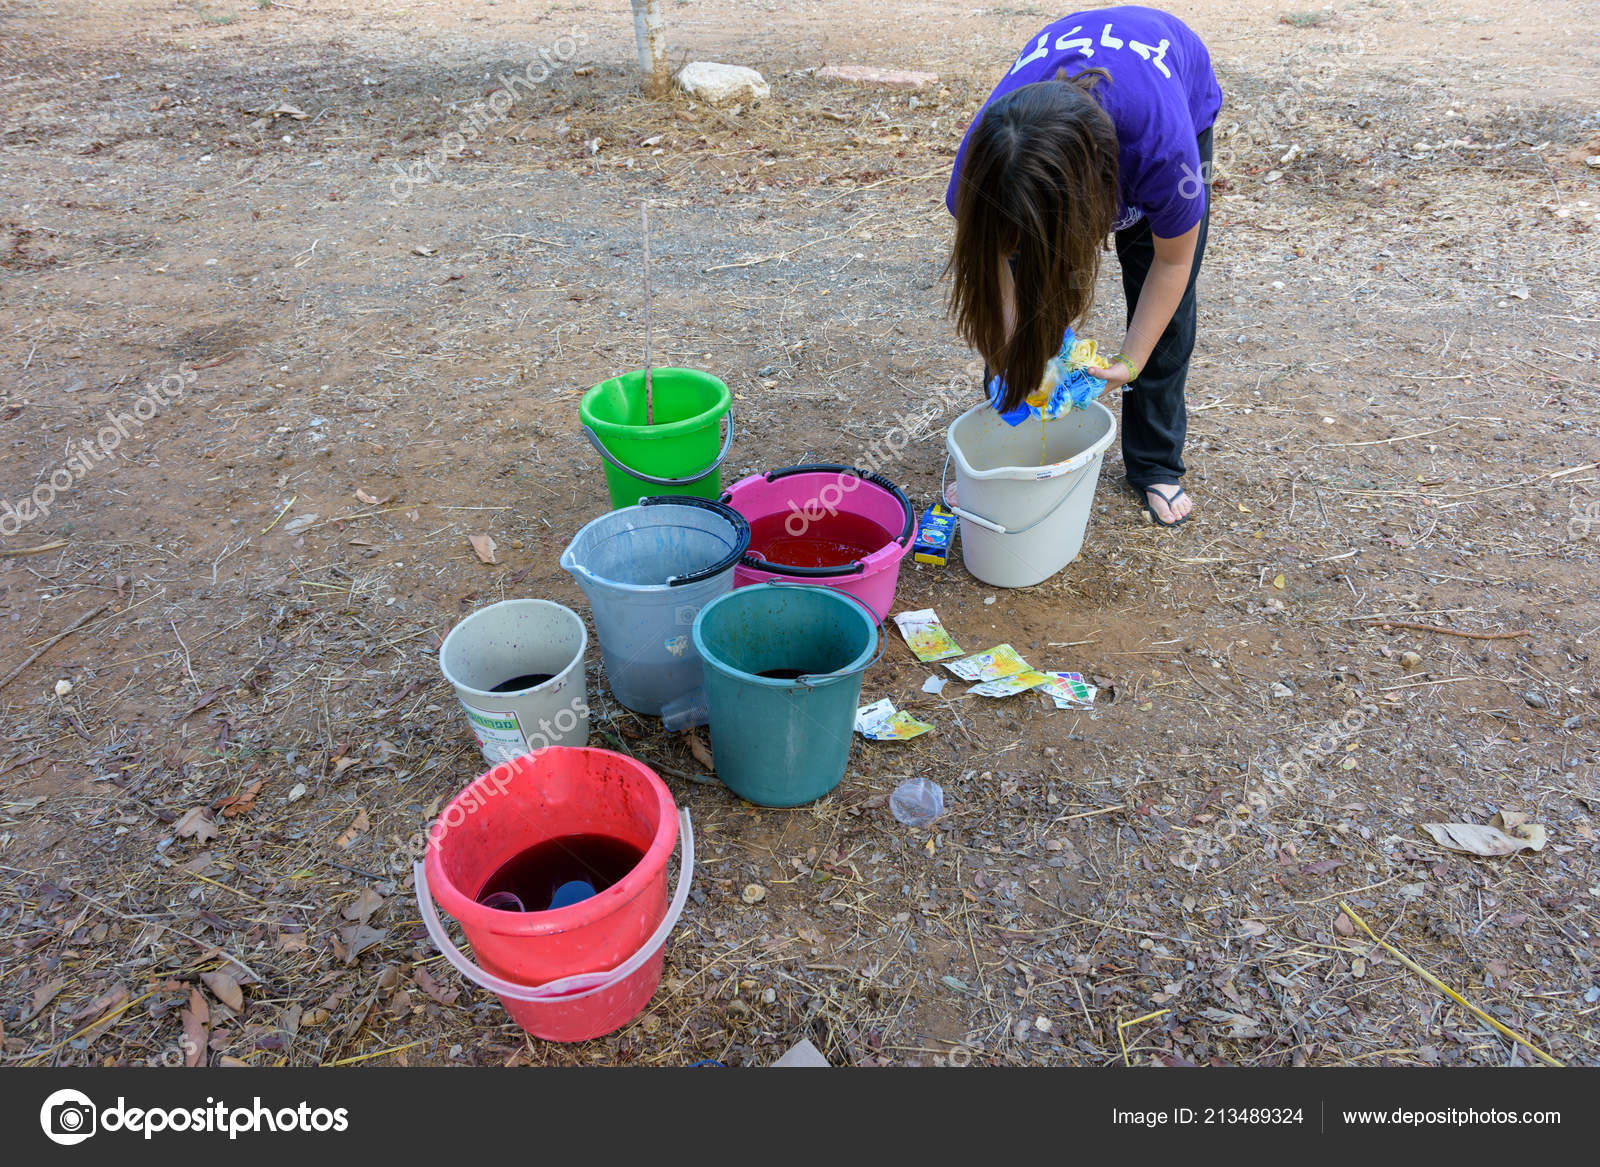 6bb29f2c 13, 2017: Teenage girl making a bunch of colorful tie-dye T-shirts during a  tie-dye party — Photo by dnaveh